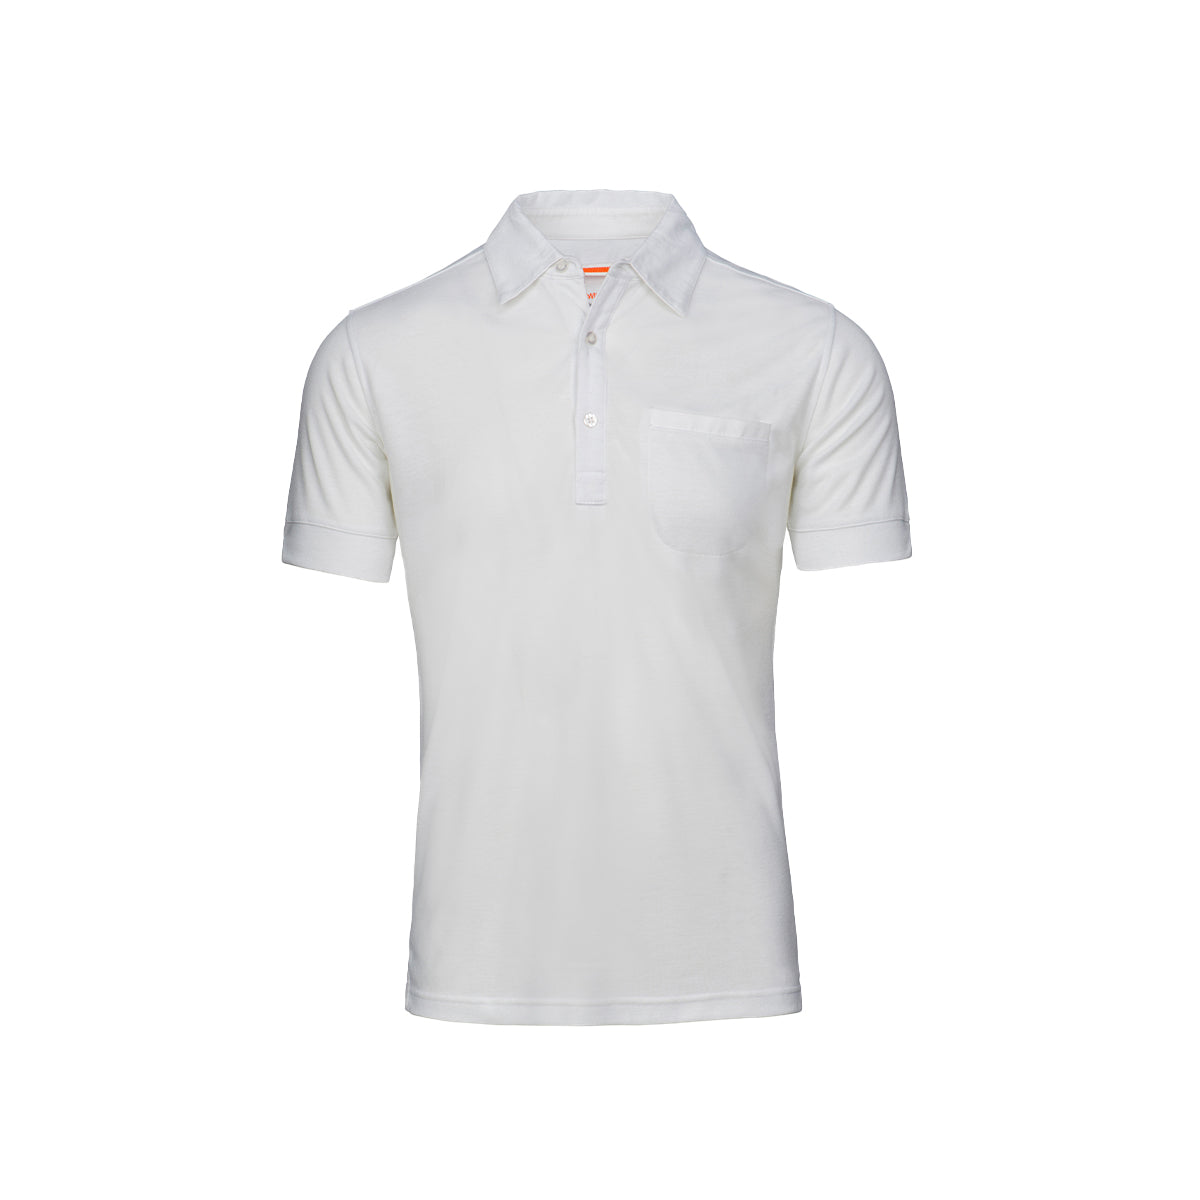 Getaria Pique Polo - background::white,variant::white